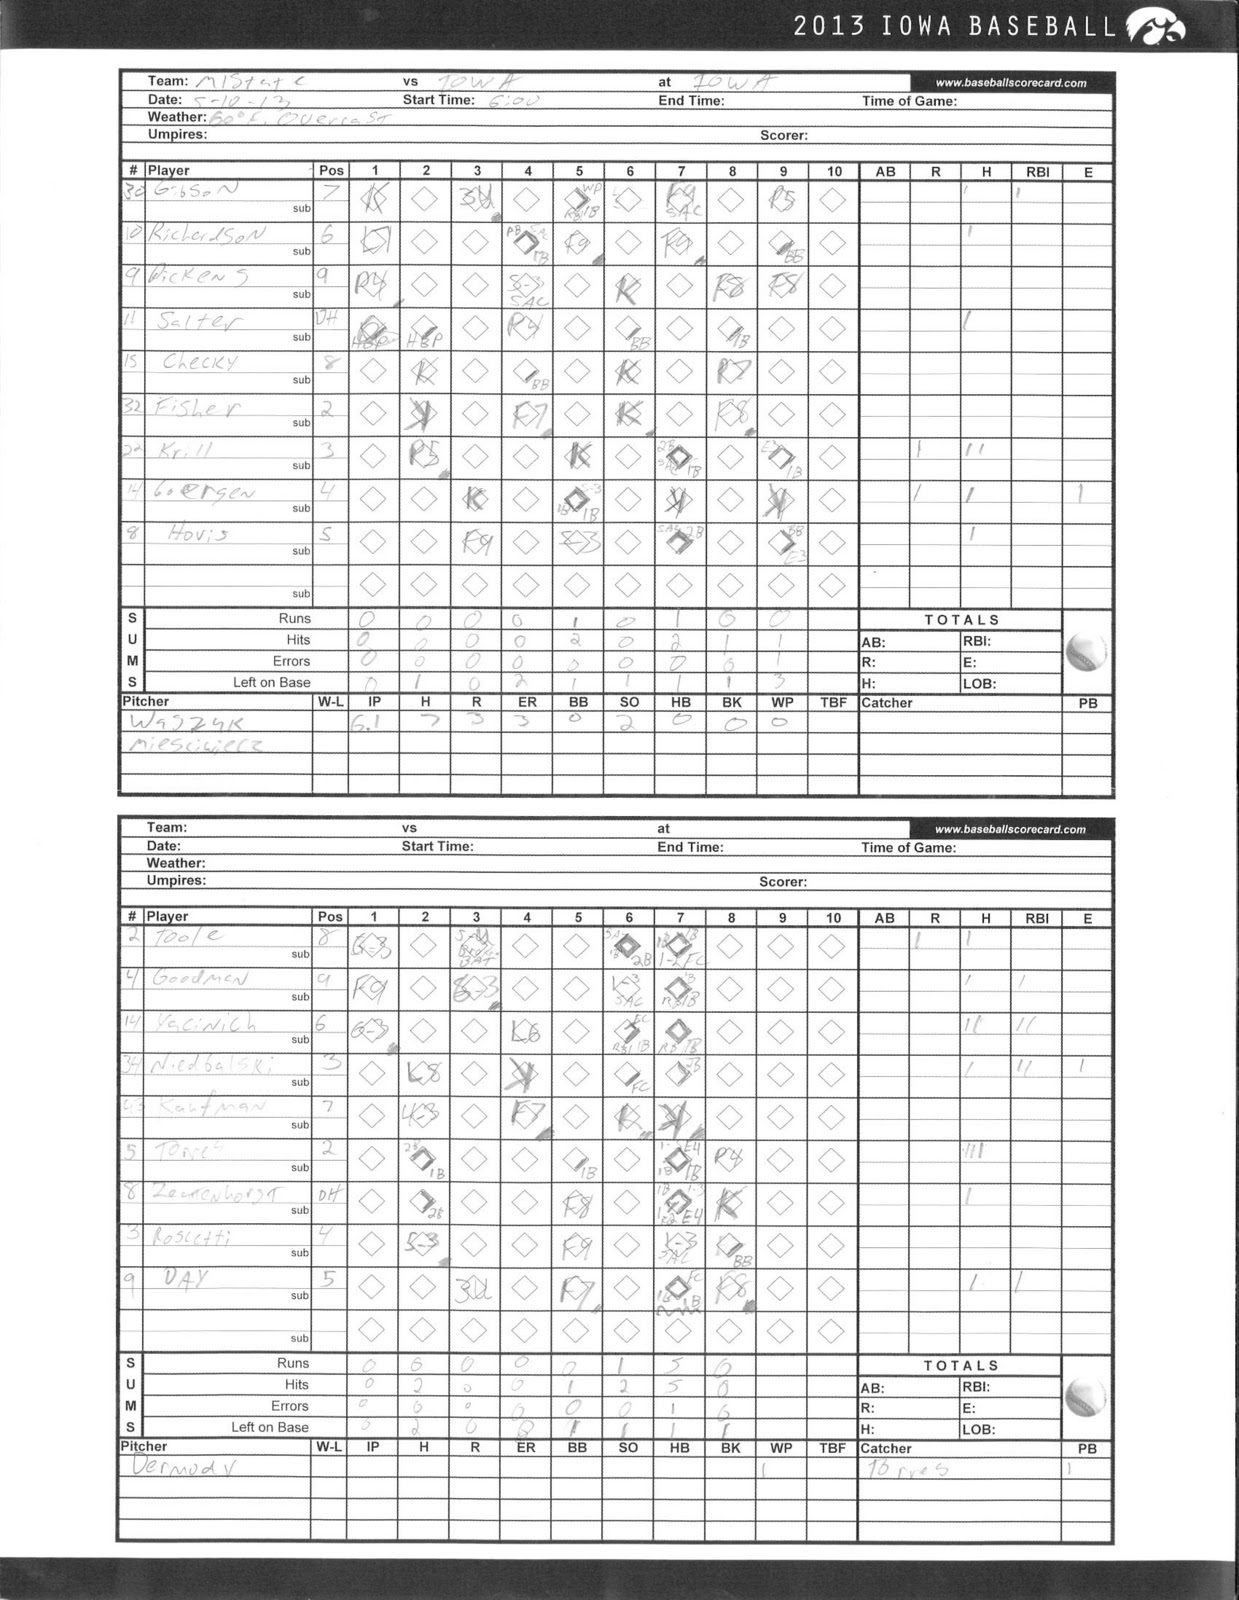 Scorecard for Iowa Baseball Game vs. Michigan State